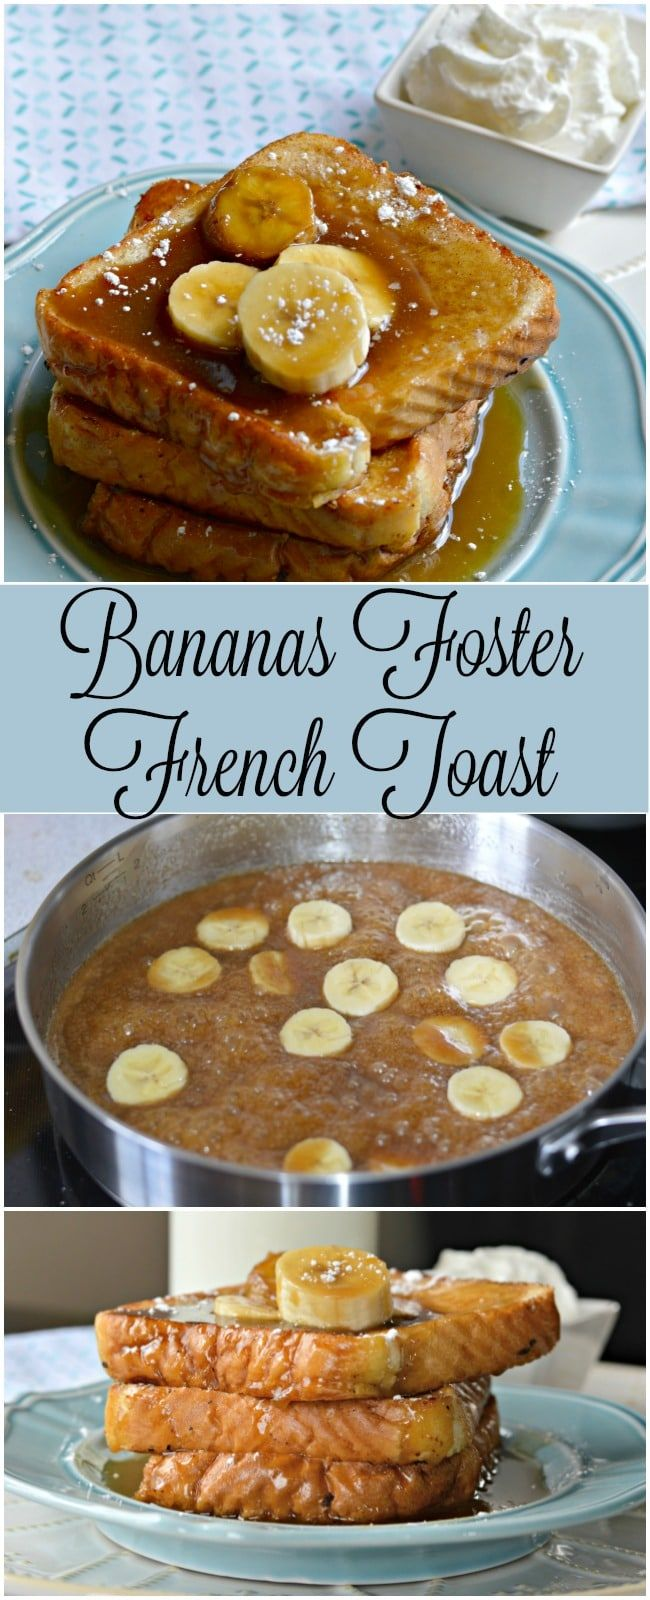 Bananas Foster French Toast